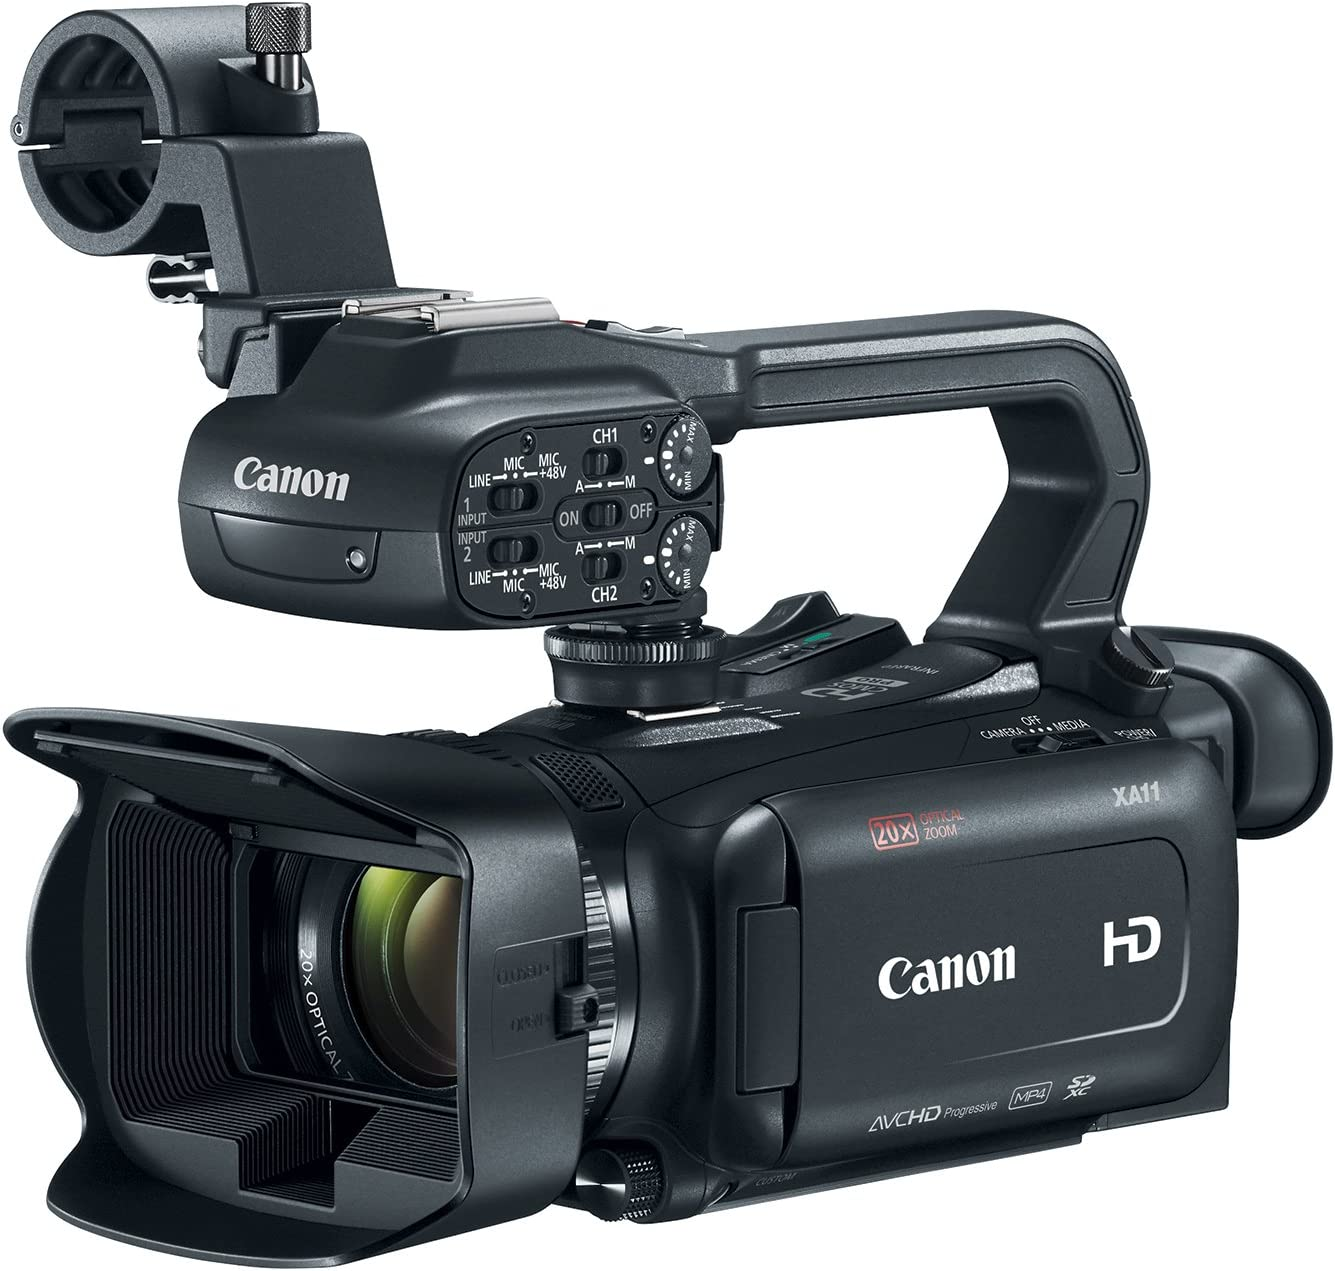 Best Camera For Filmmaking On a Budget Under $1500 - Canon Pro XA11